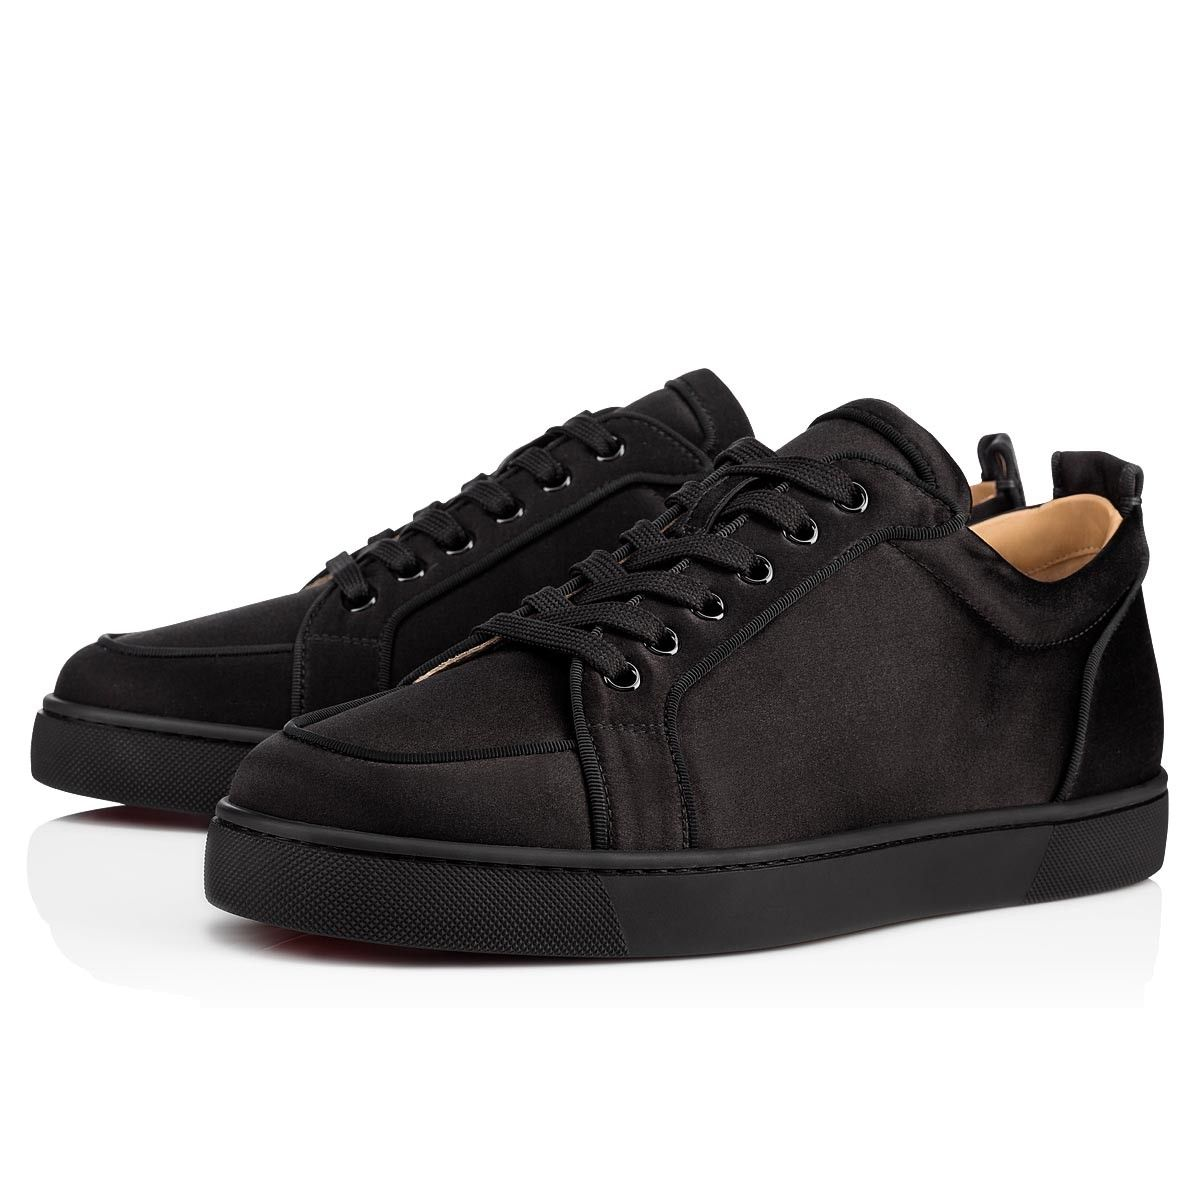 authorized site pretty cool look good shoes sale CHRISTIAN LOUBOUTIN Rantulow Orlato Men's Flat ...